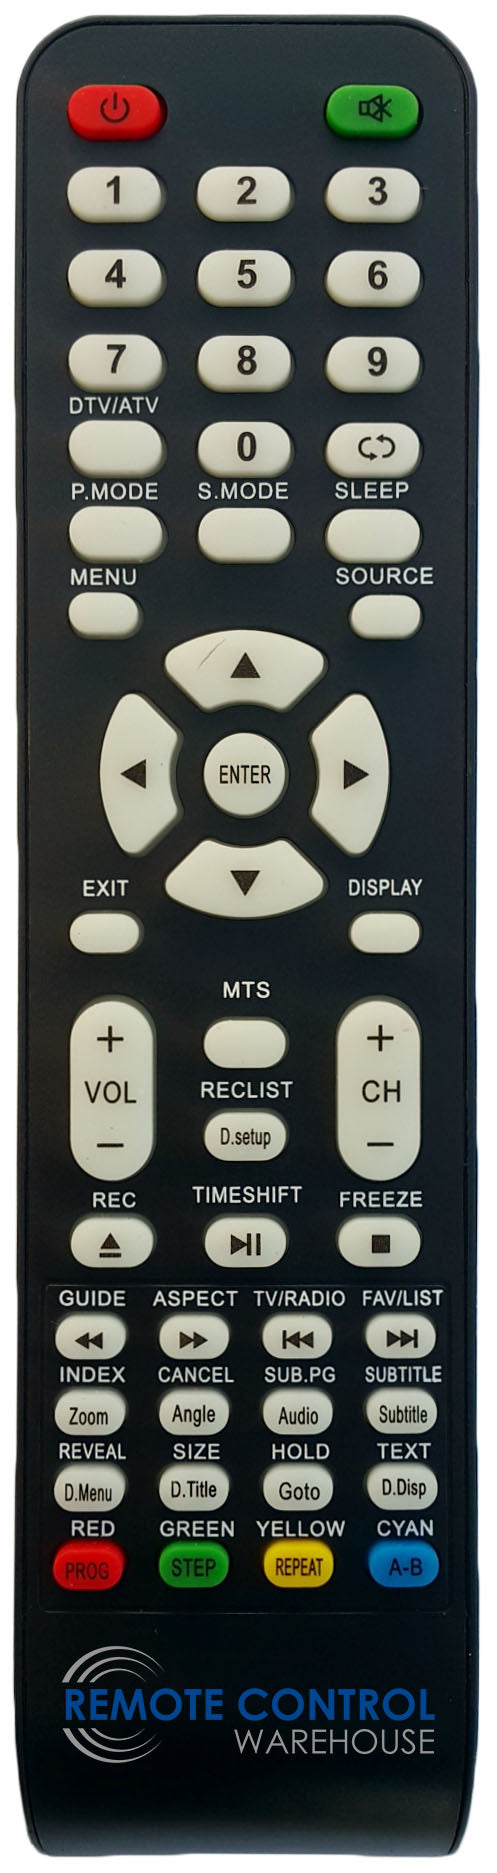 REPLACEMENT GVA REMOTE CONTROL FOR GVA G24TDC12V15 DVD COMBO TV - Remote Control Warehouse